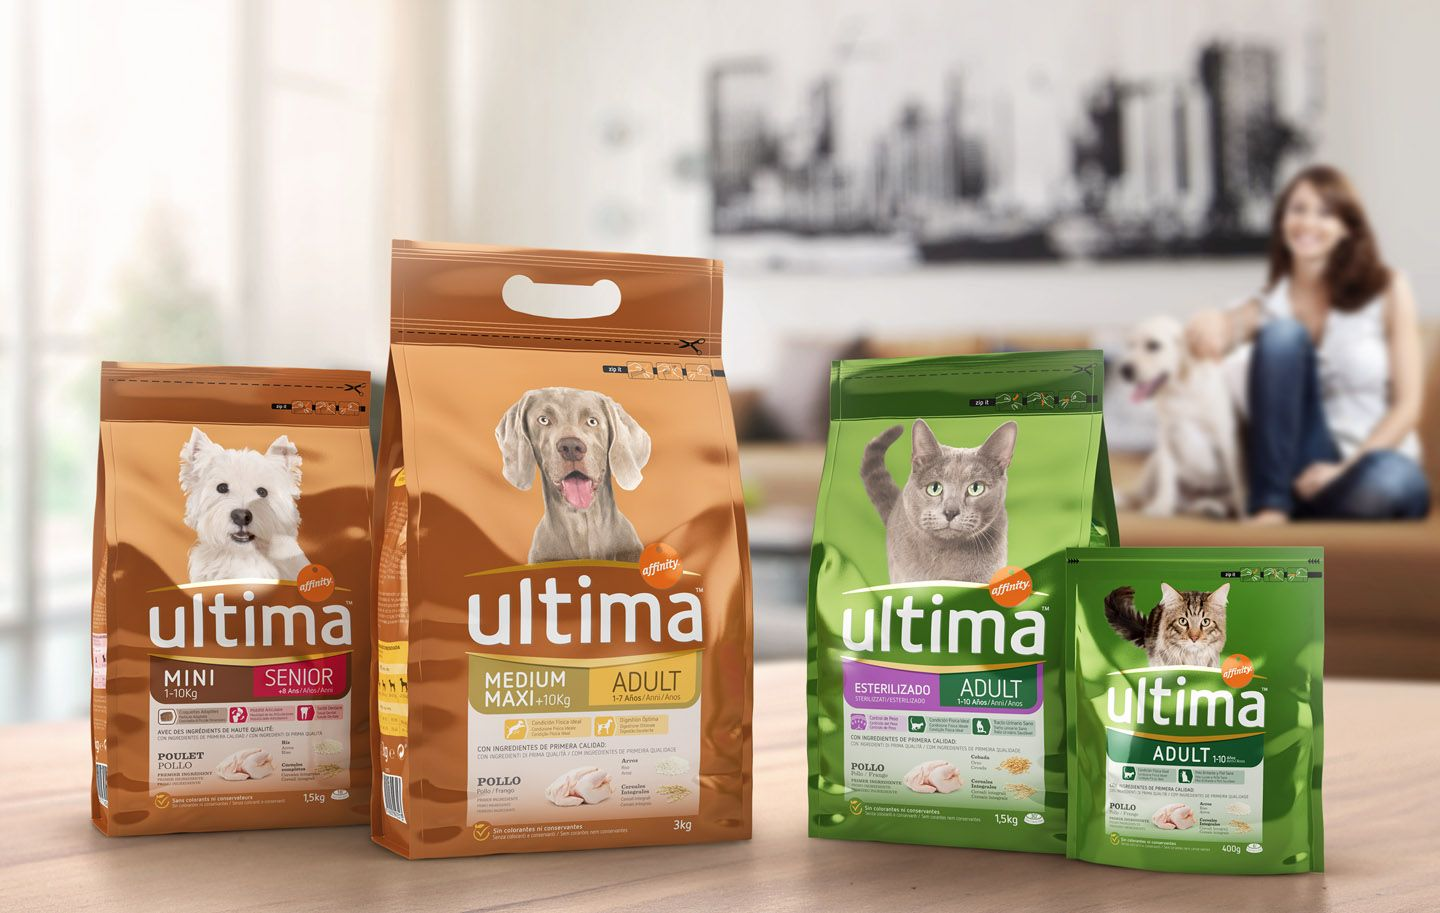 Pet Food Packaging Design By Little Buddha Affinity Petcare Ultima Pet Food Packaging Food Animals Food Packaging Design